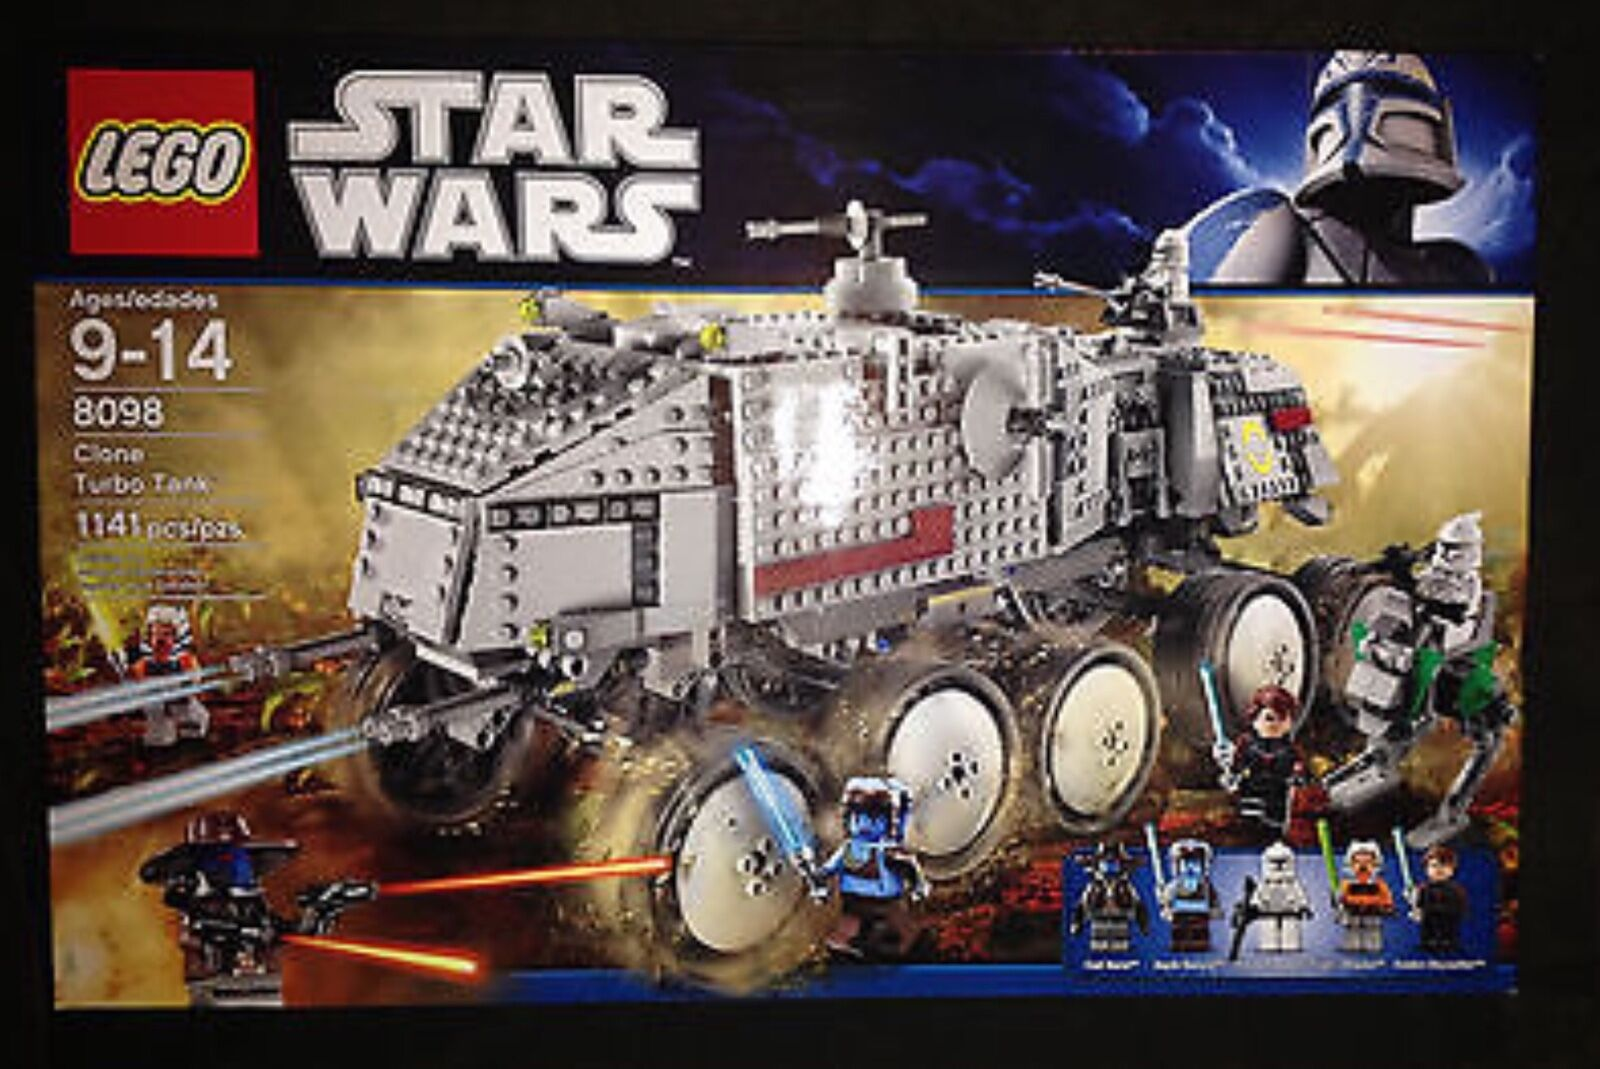 Lego Star Wars 8098 Clone Turbo Tank 1141 PC 5 Mini Figuras Anakin Cad Bane Nuevo